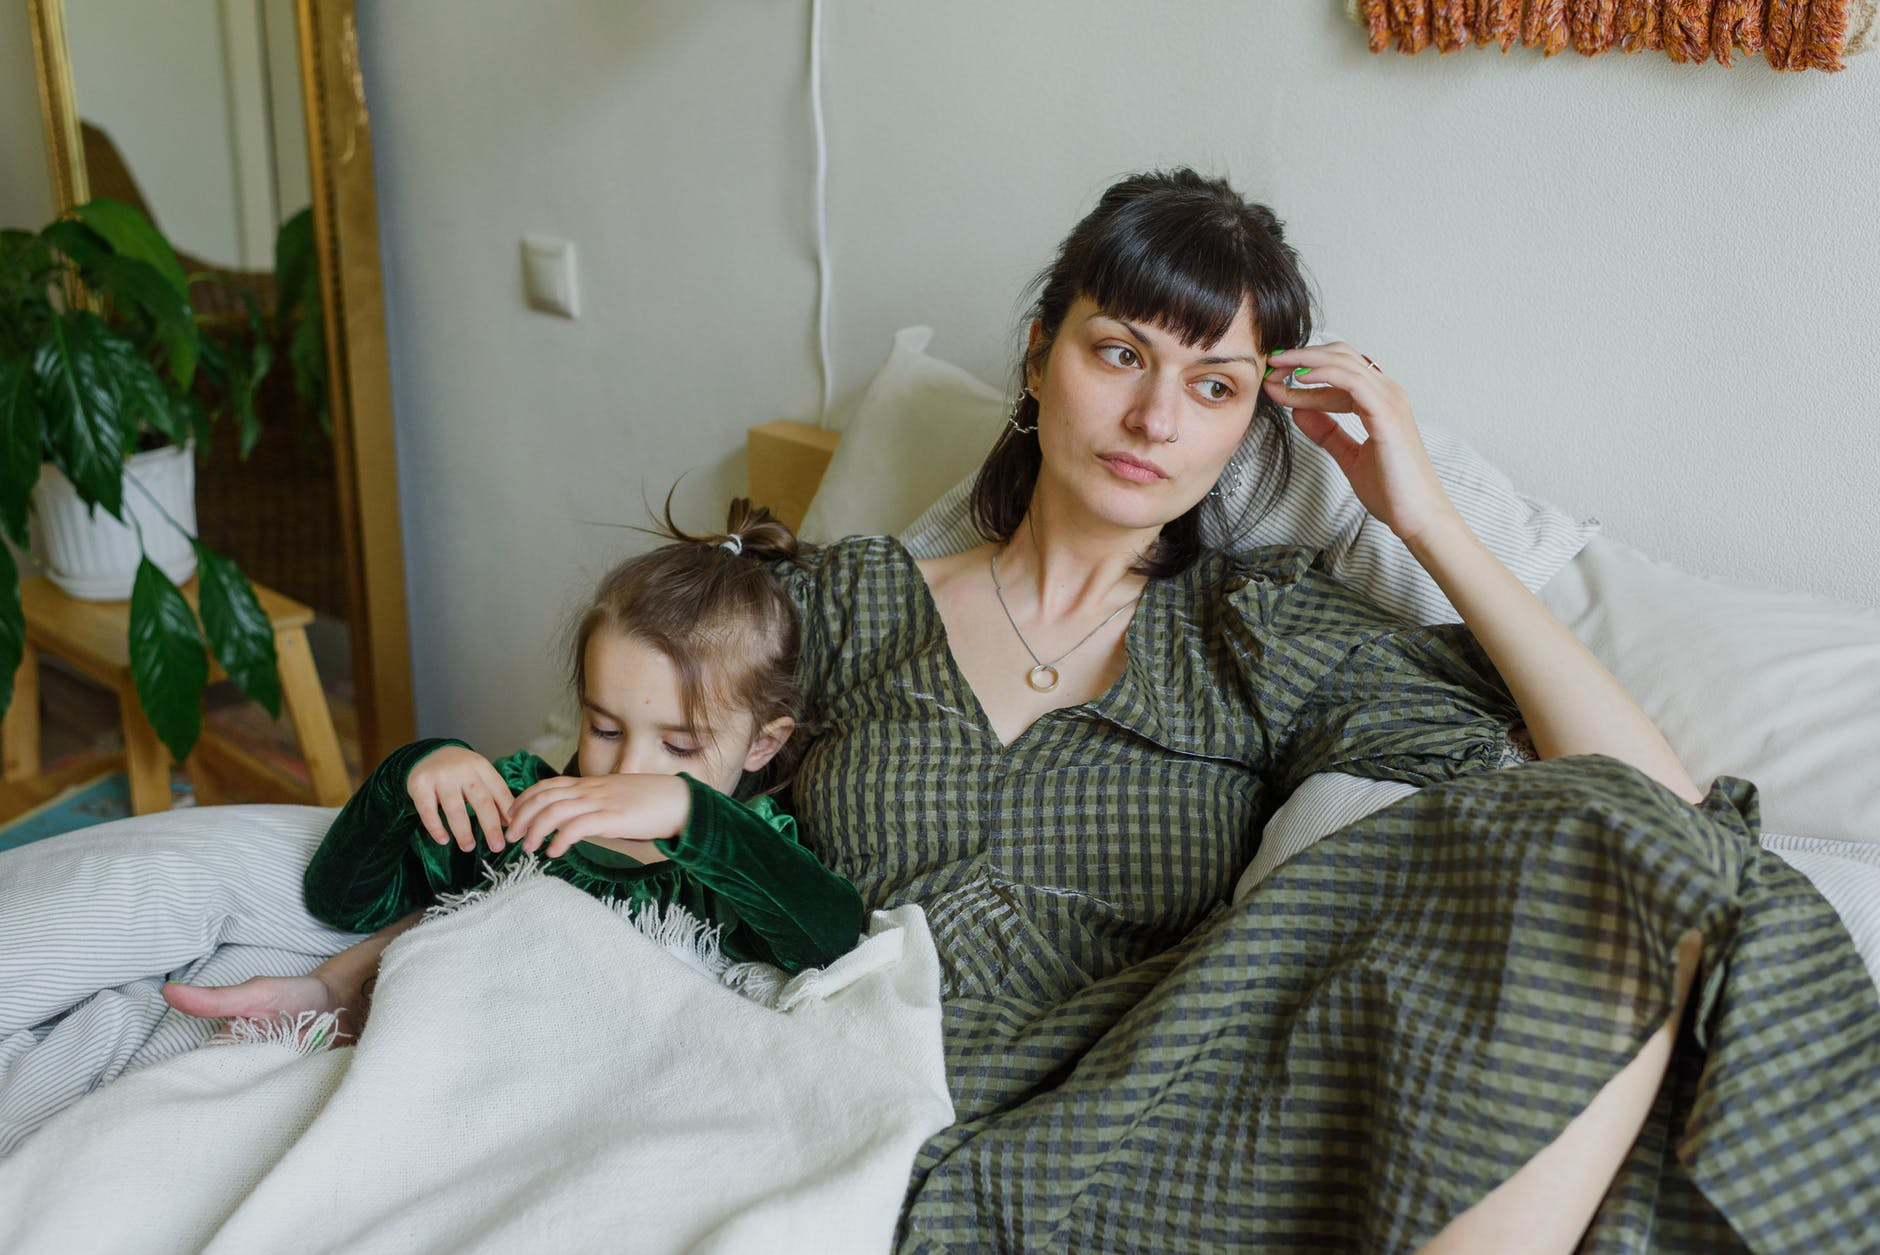 tired mother with cute daughter resting on bed in cozy room